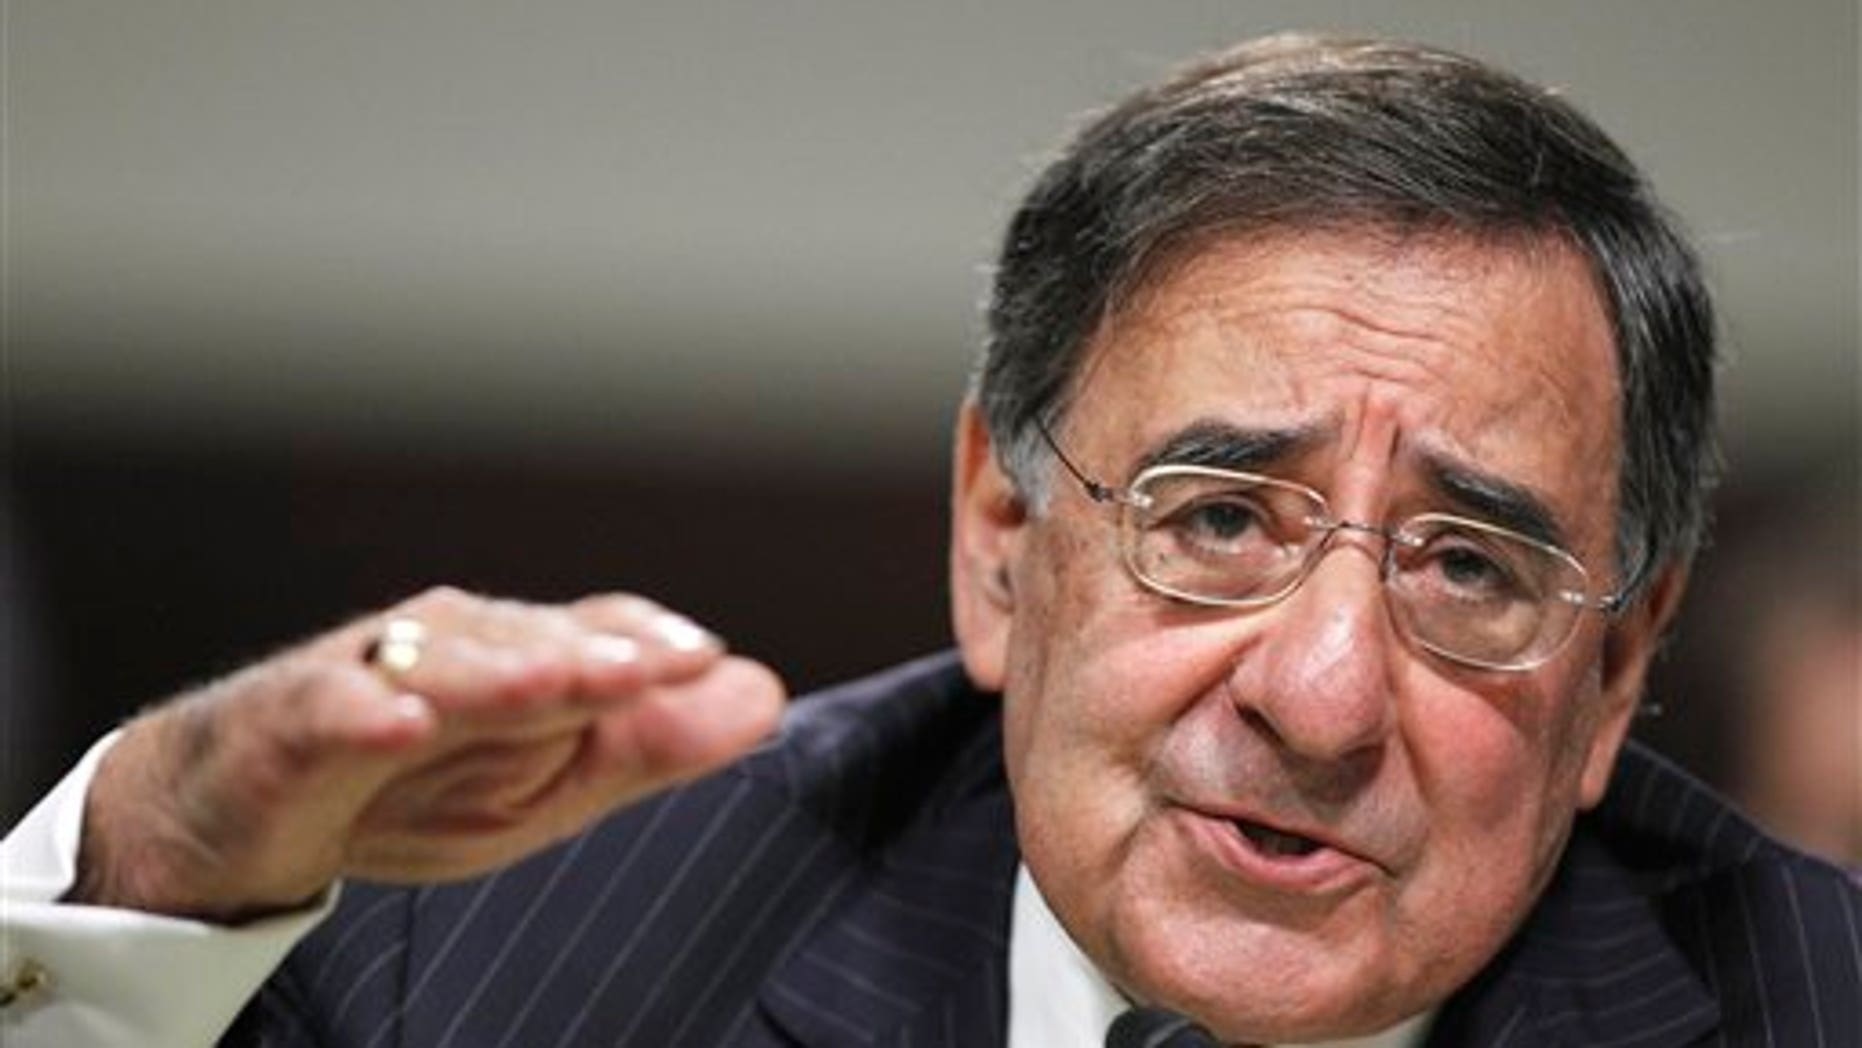 June 9: Pentagon chief Leon Panetta testifies on Capital Hill. The Pentagon plans to send $45 billion in anti-terror military equipment to African nations in hopes of countering the growing terror threat in Somalia.